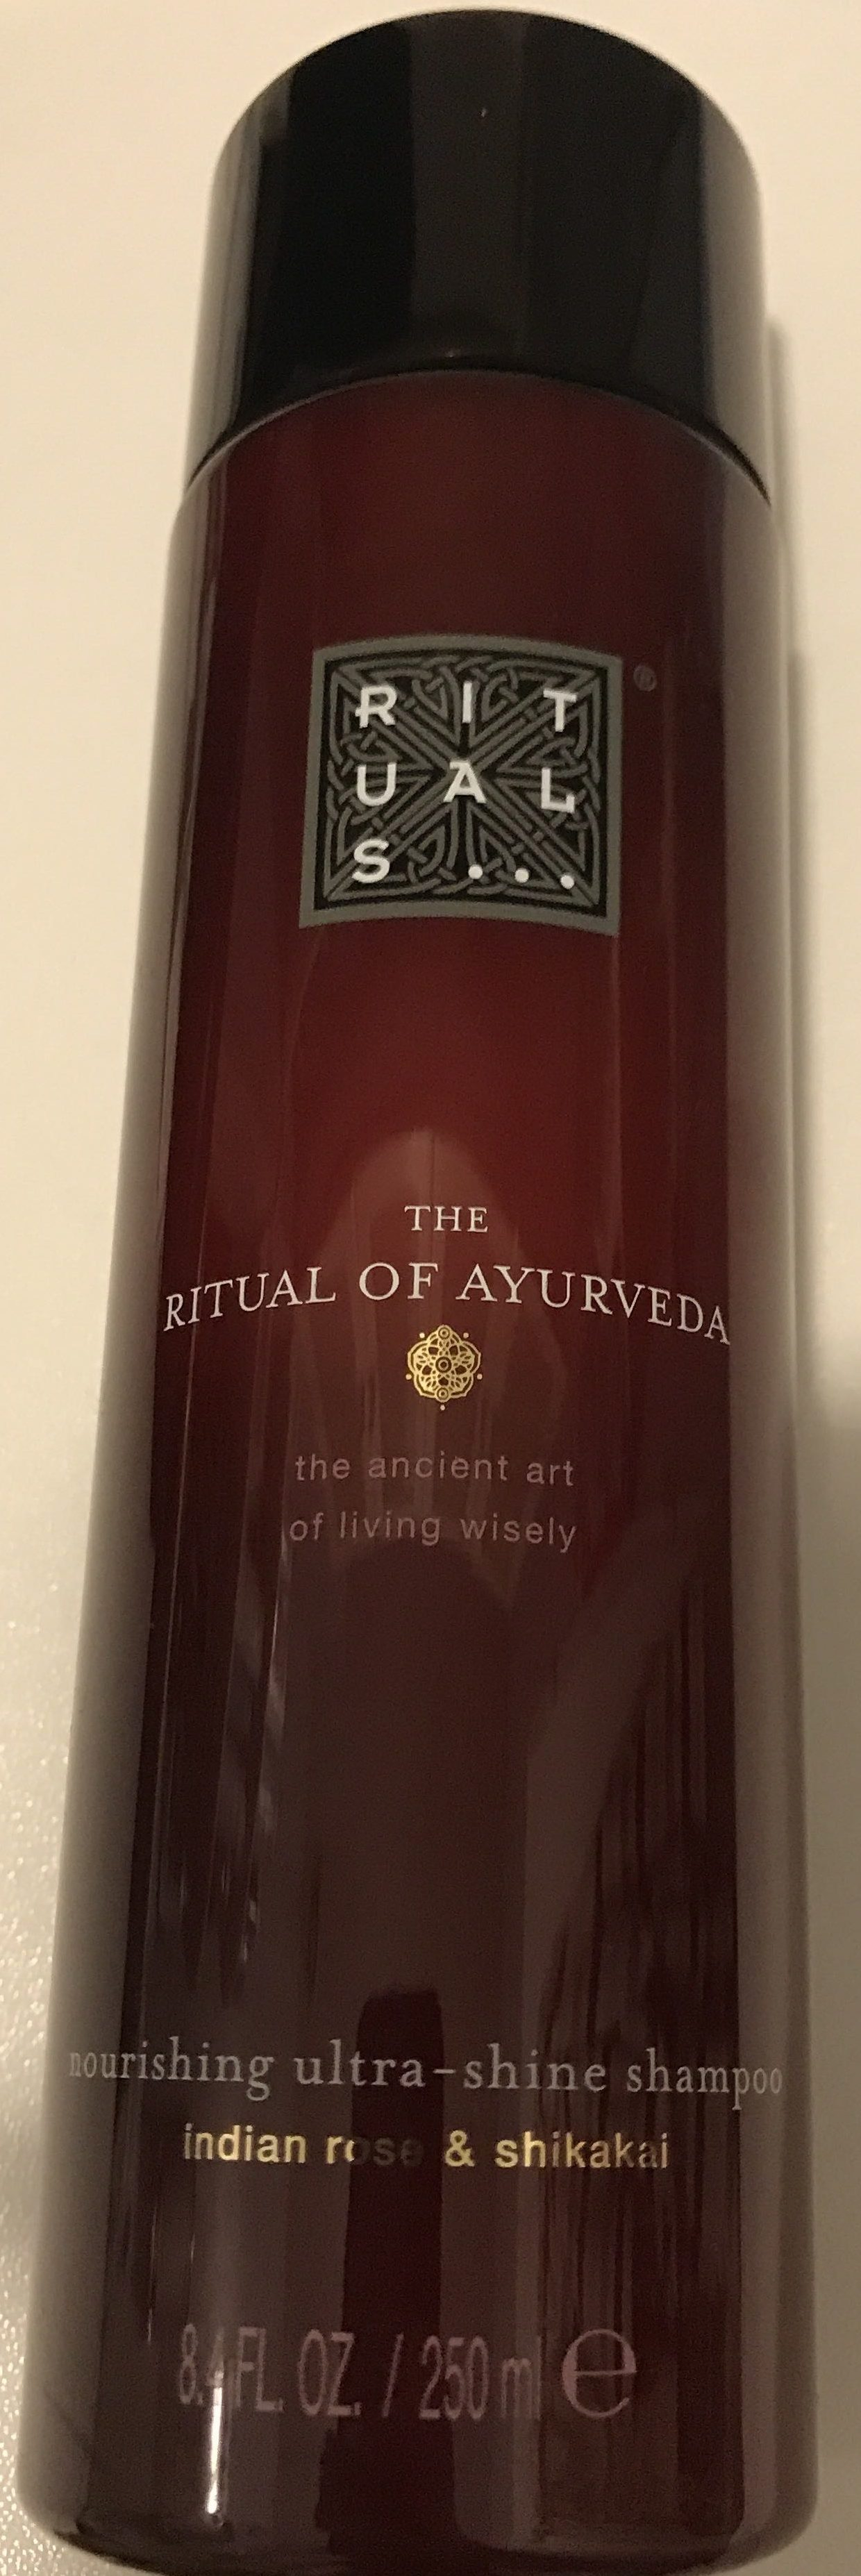 The Ritual of Ayurveda Nourishing Ultra-Shine Shampoo - Product